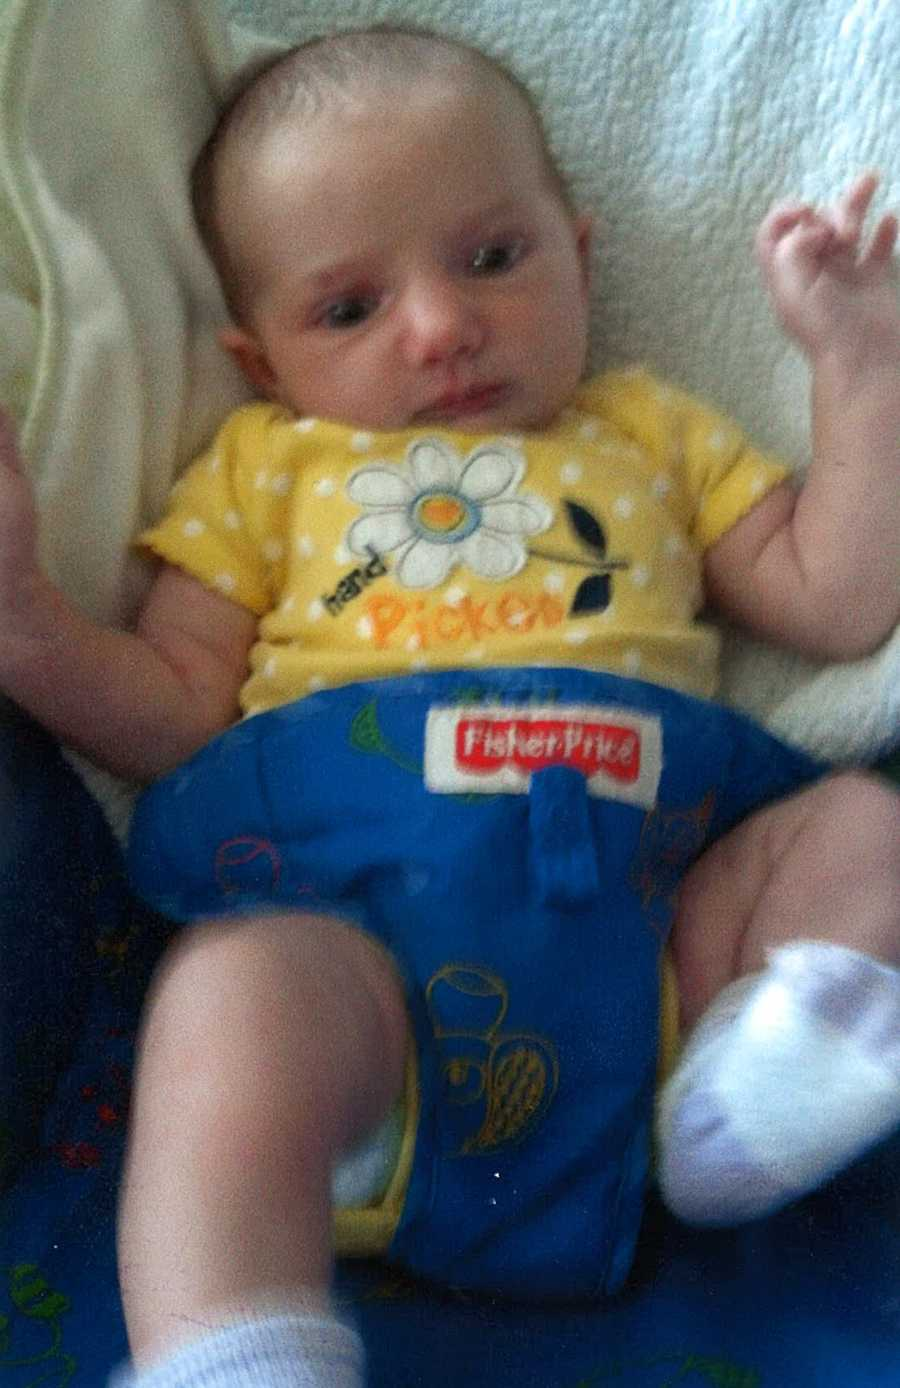 Marsek's two daughters are also missing. Macenzie is 4-months old with brown hair and brown eyes.